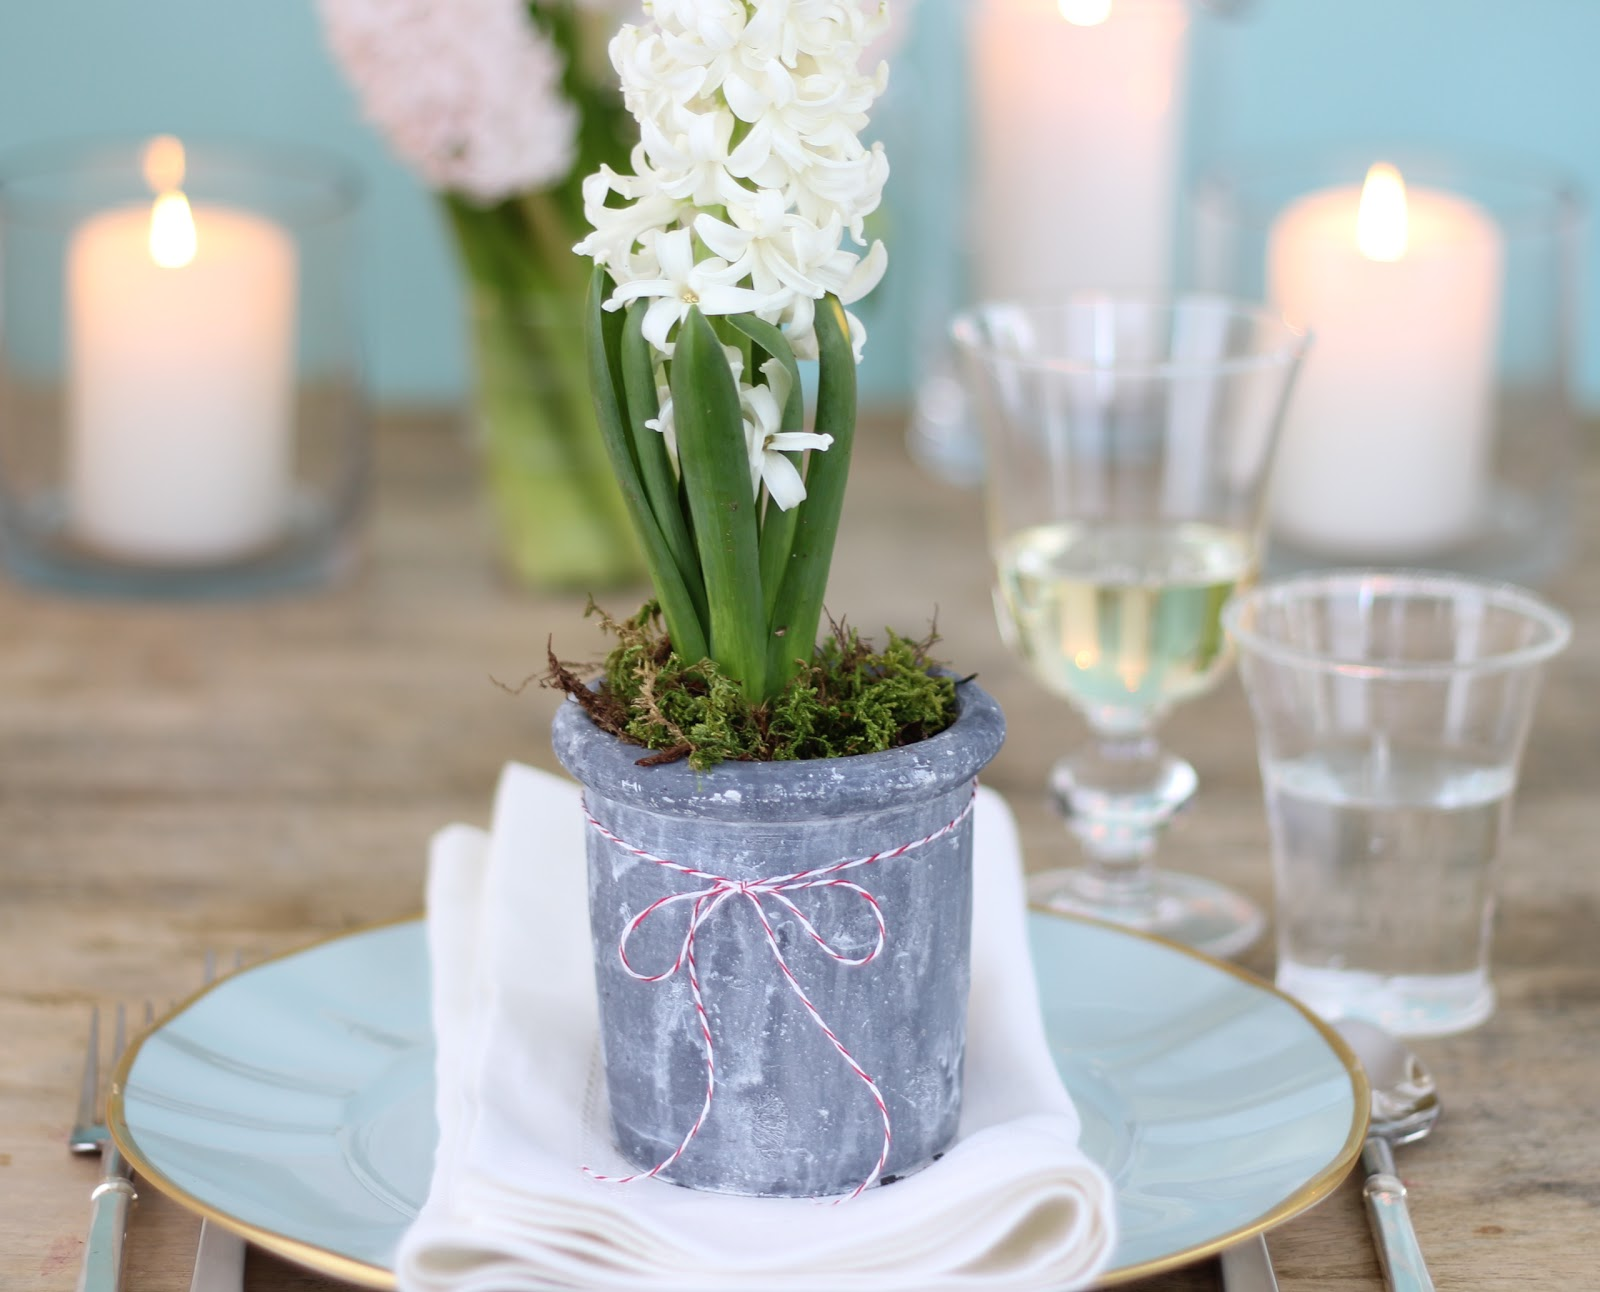 Jenny steffens hobick valentines day table setting